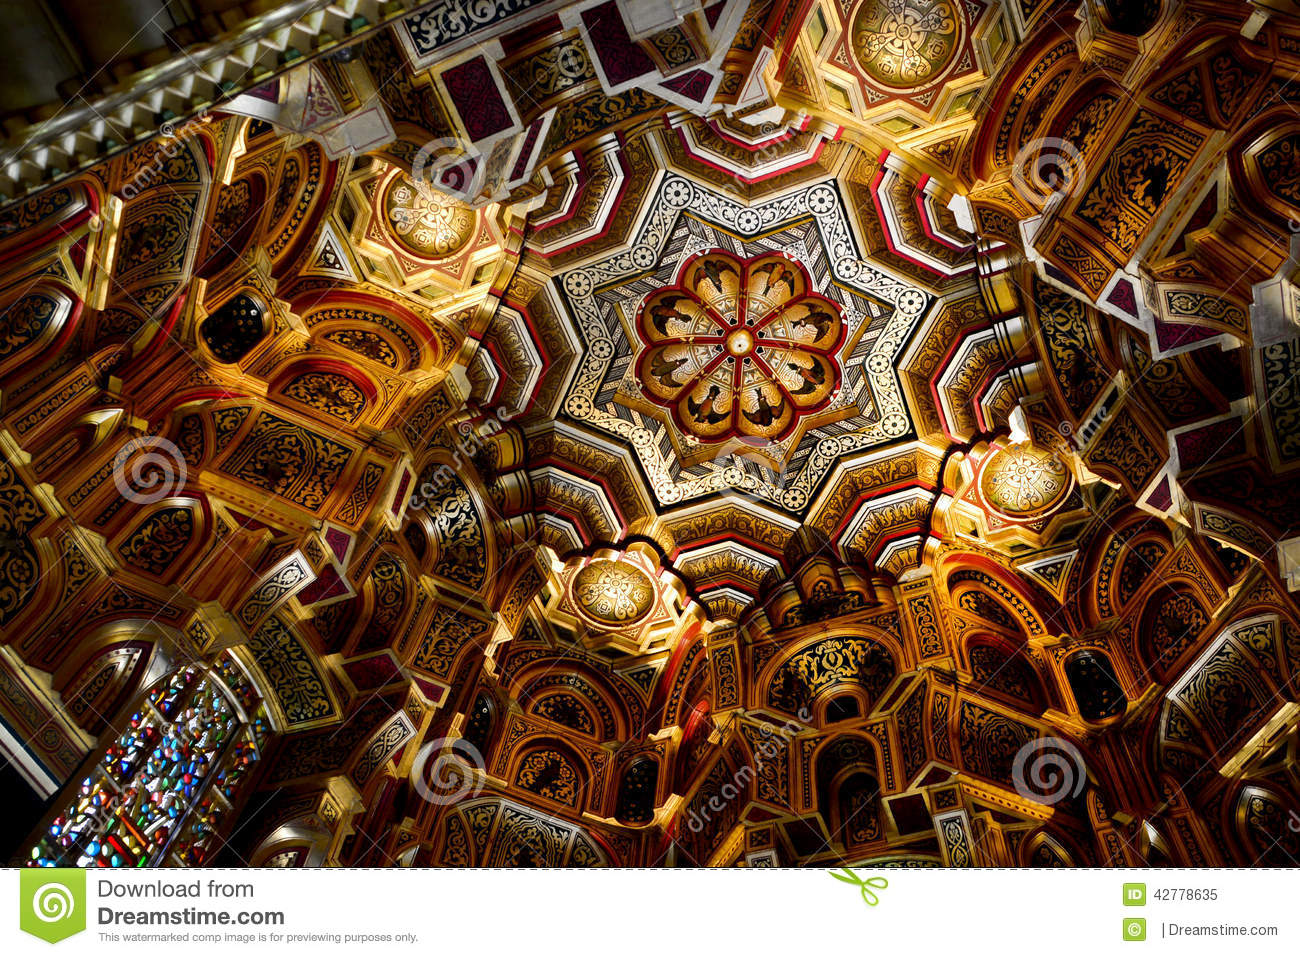 The ceiling of Arab room in Cardiff castle. One of the most beautiful